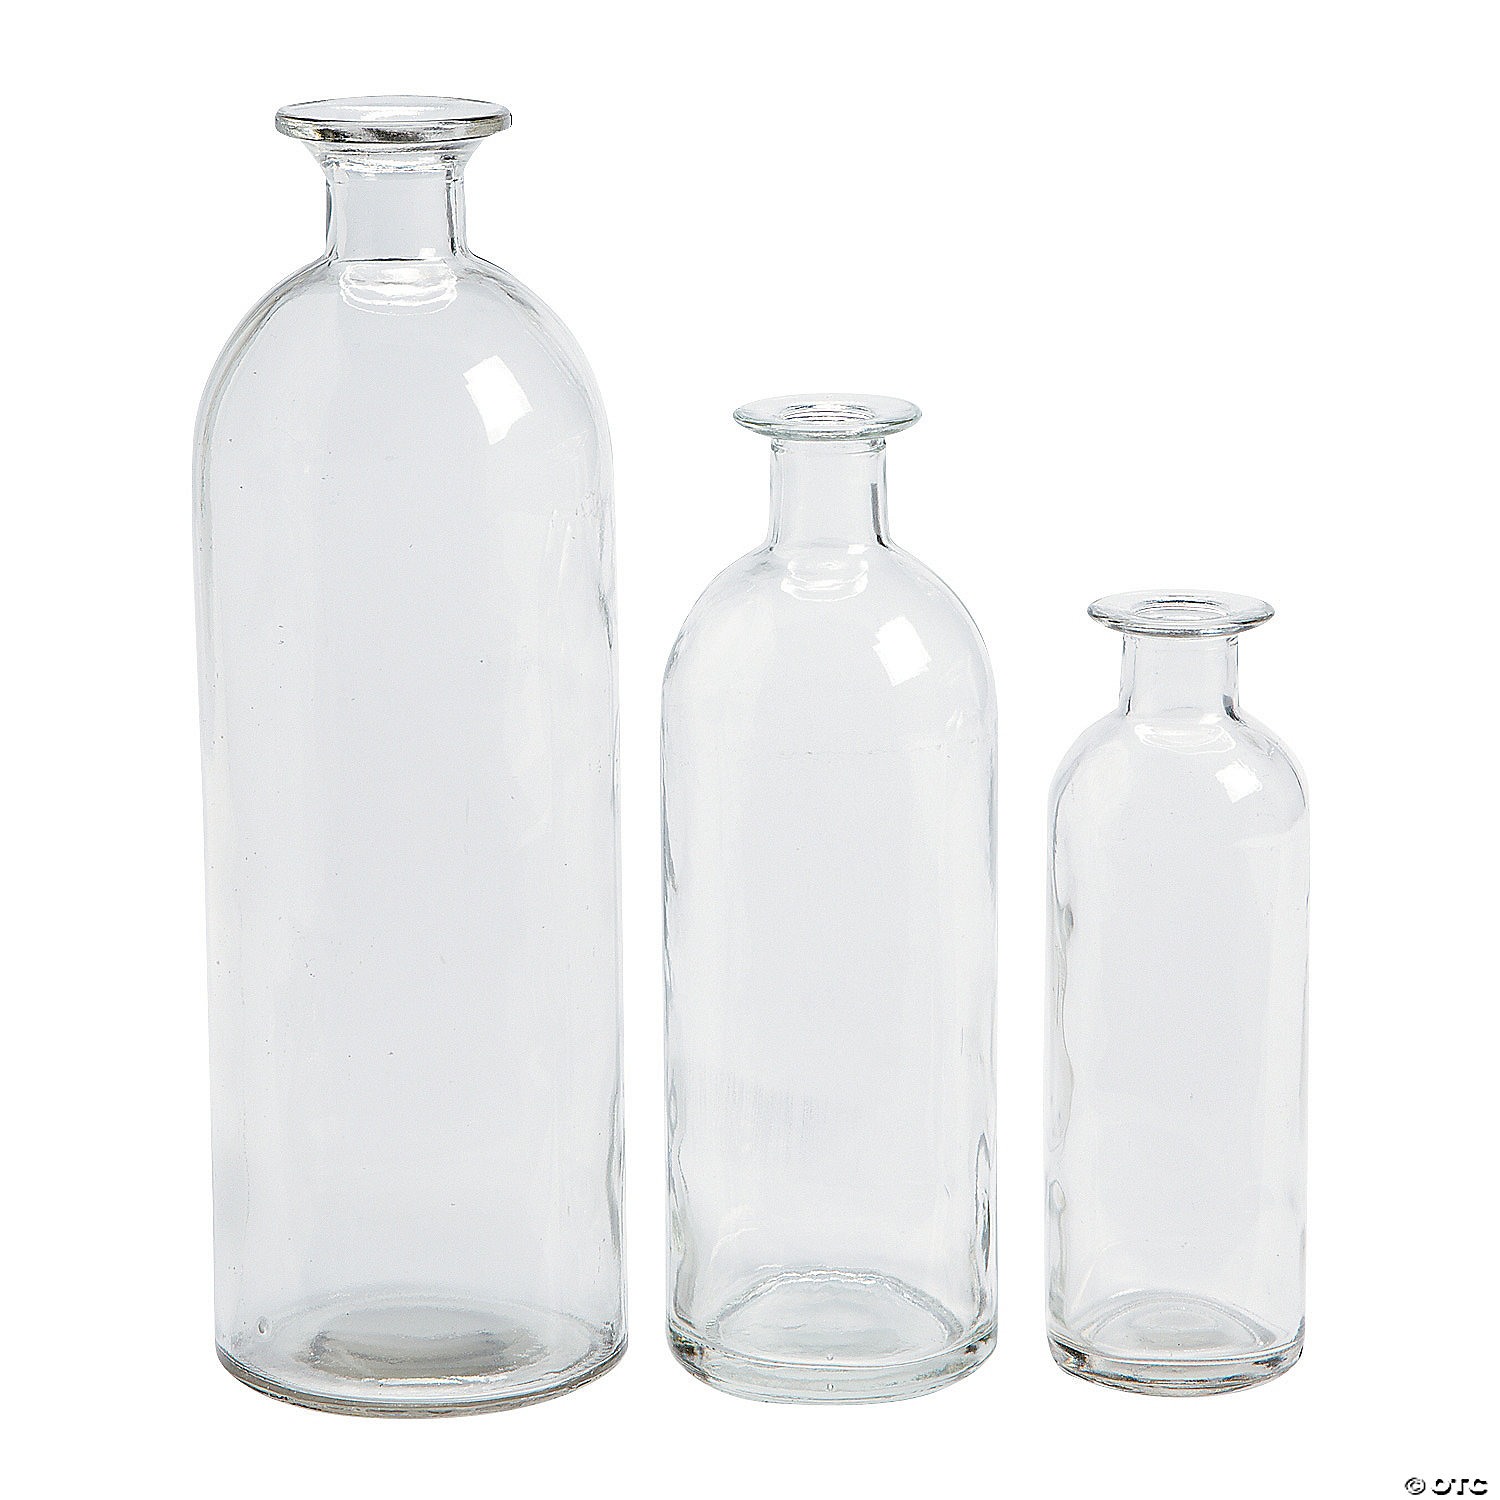 neck following under is vase loft numbers the sku glass narrow manufacturer clear listed also sometimes webster temple